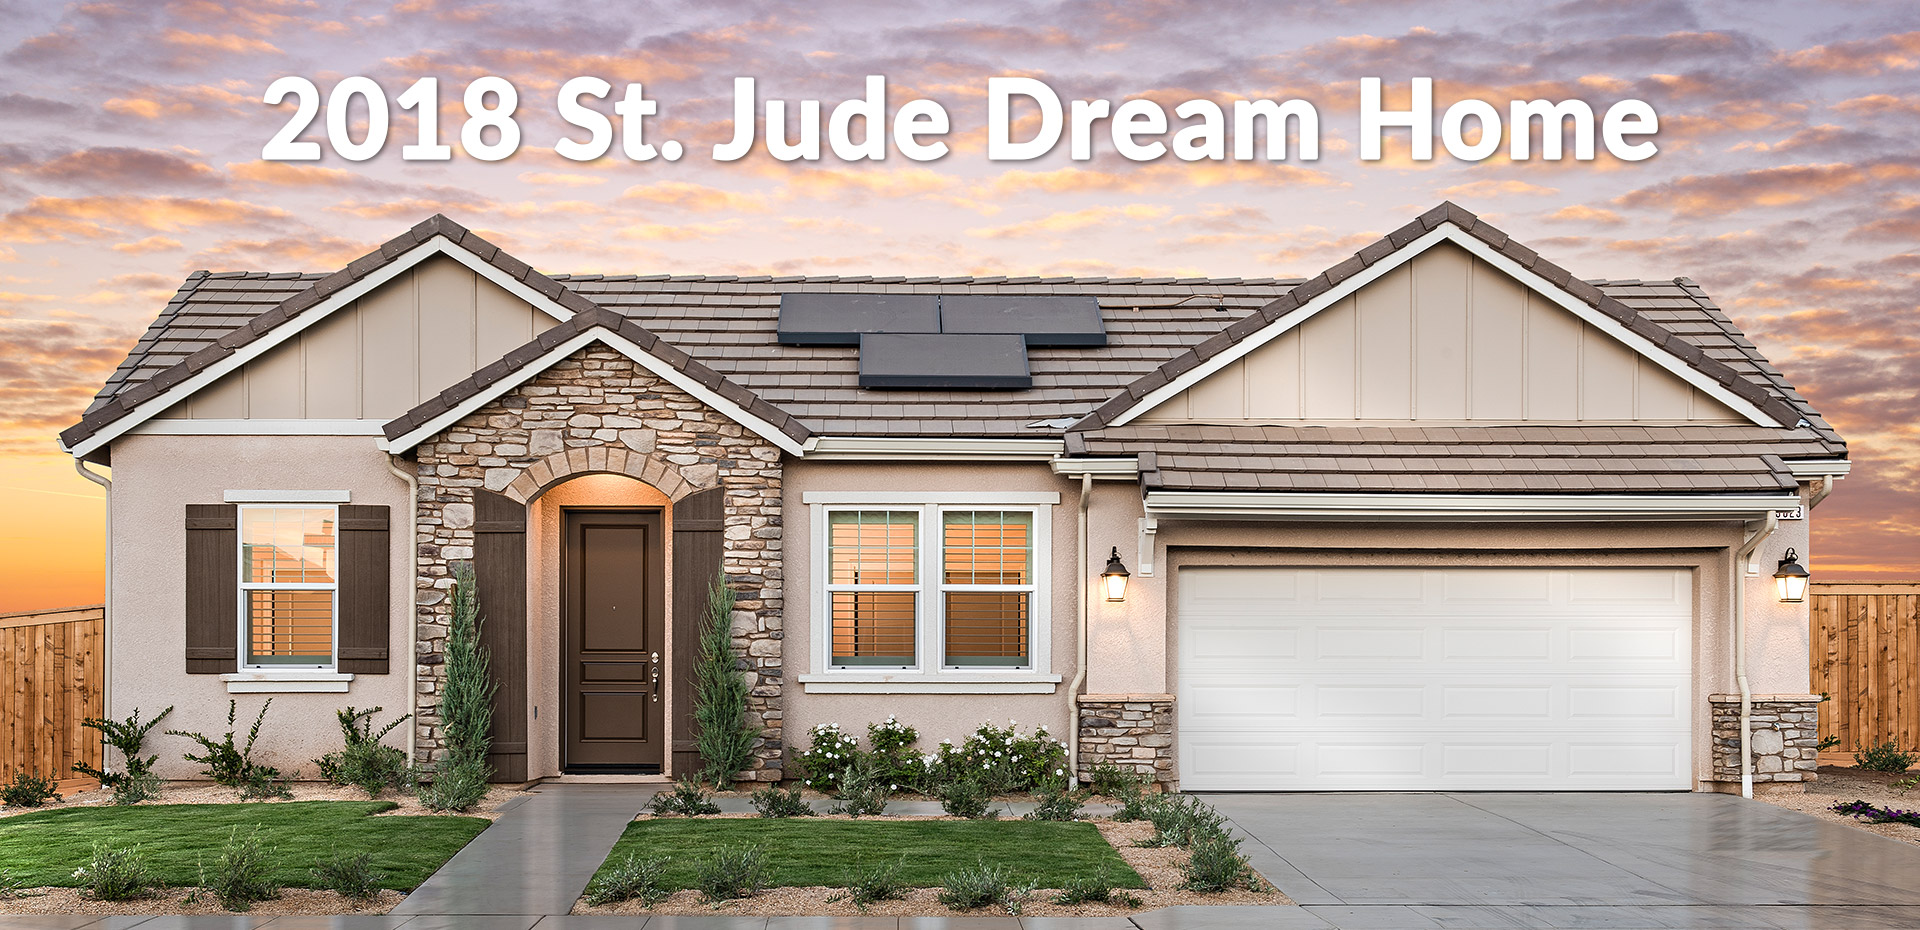 st jude dream home giveaway 2019 fresno ca